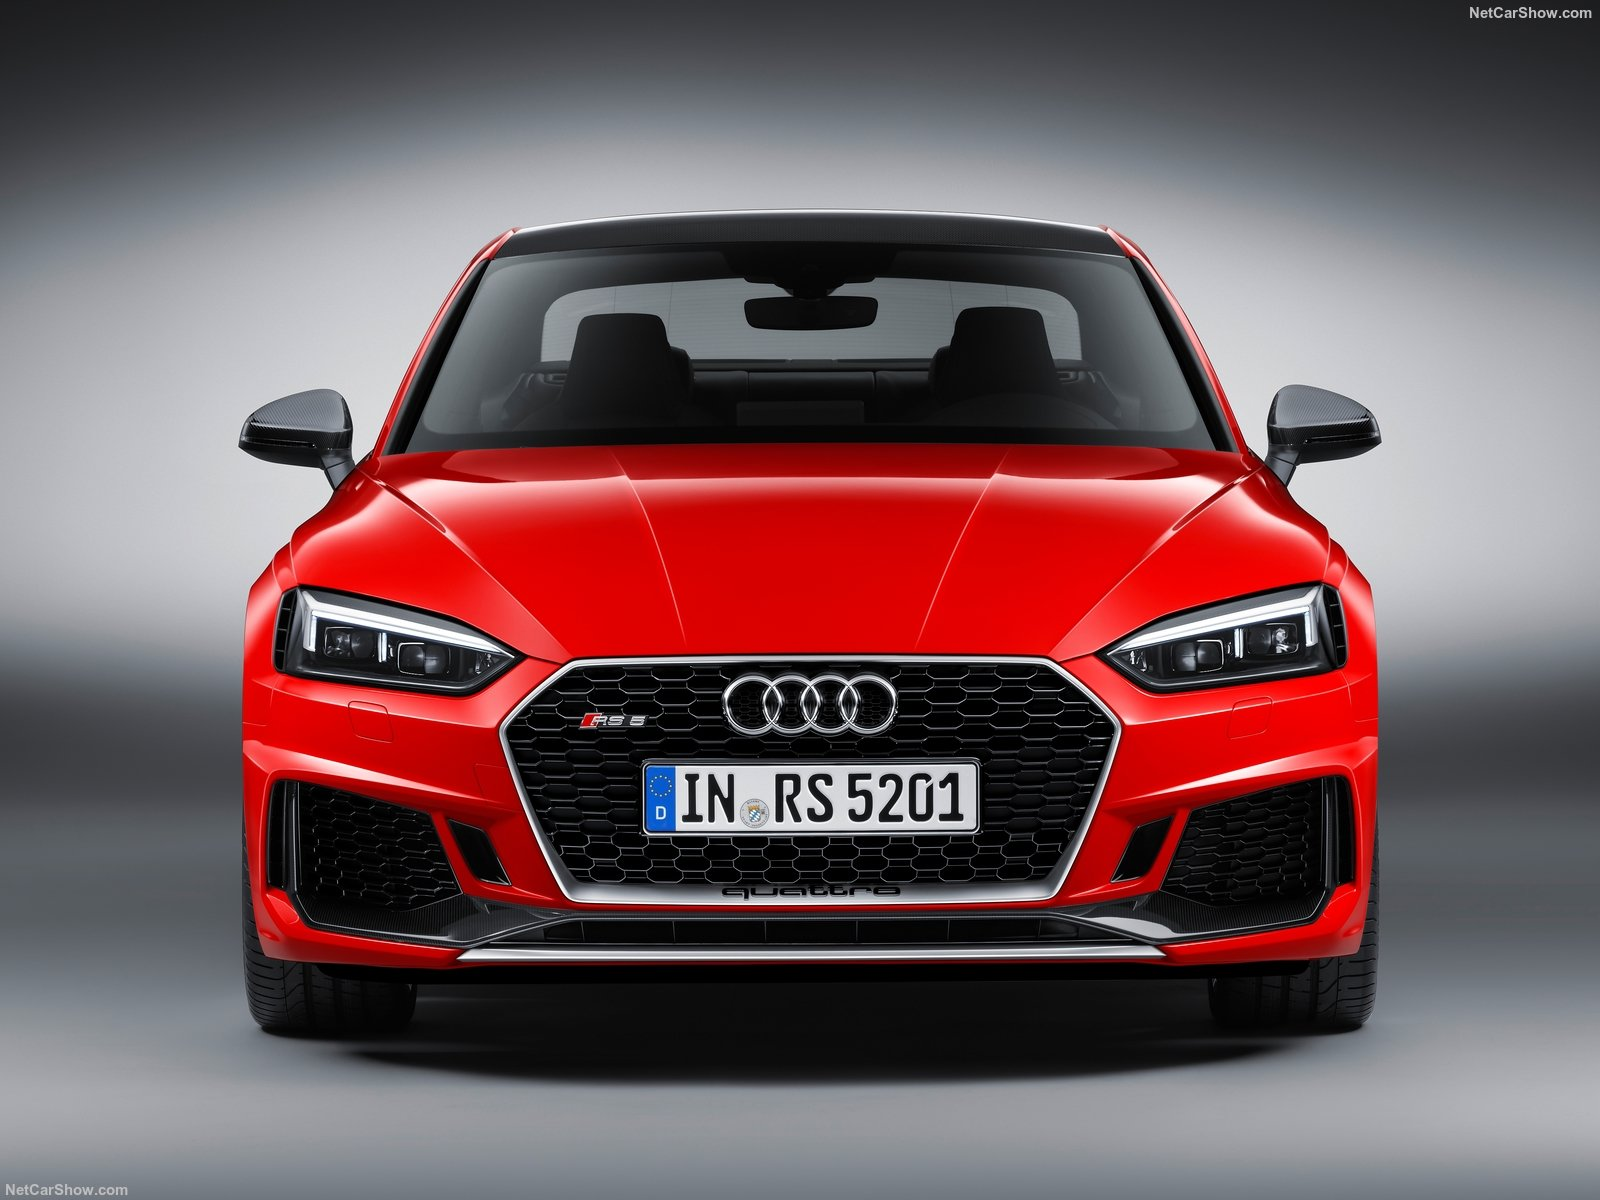 Audi RS5 Coupe photo 175189